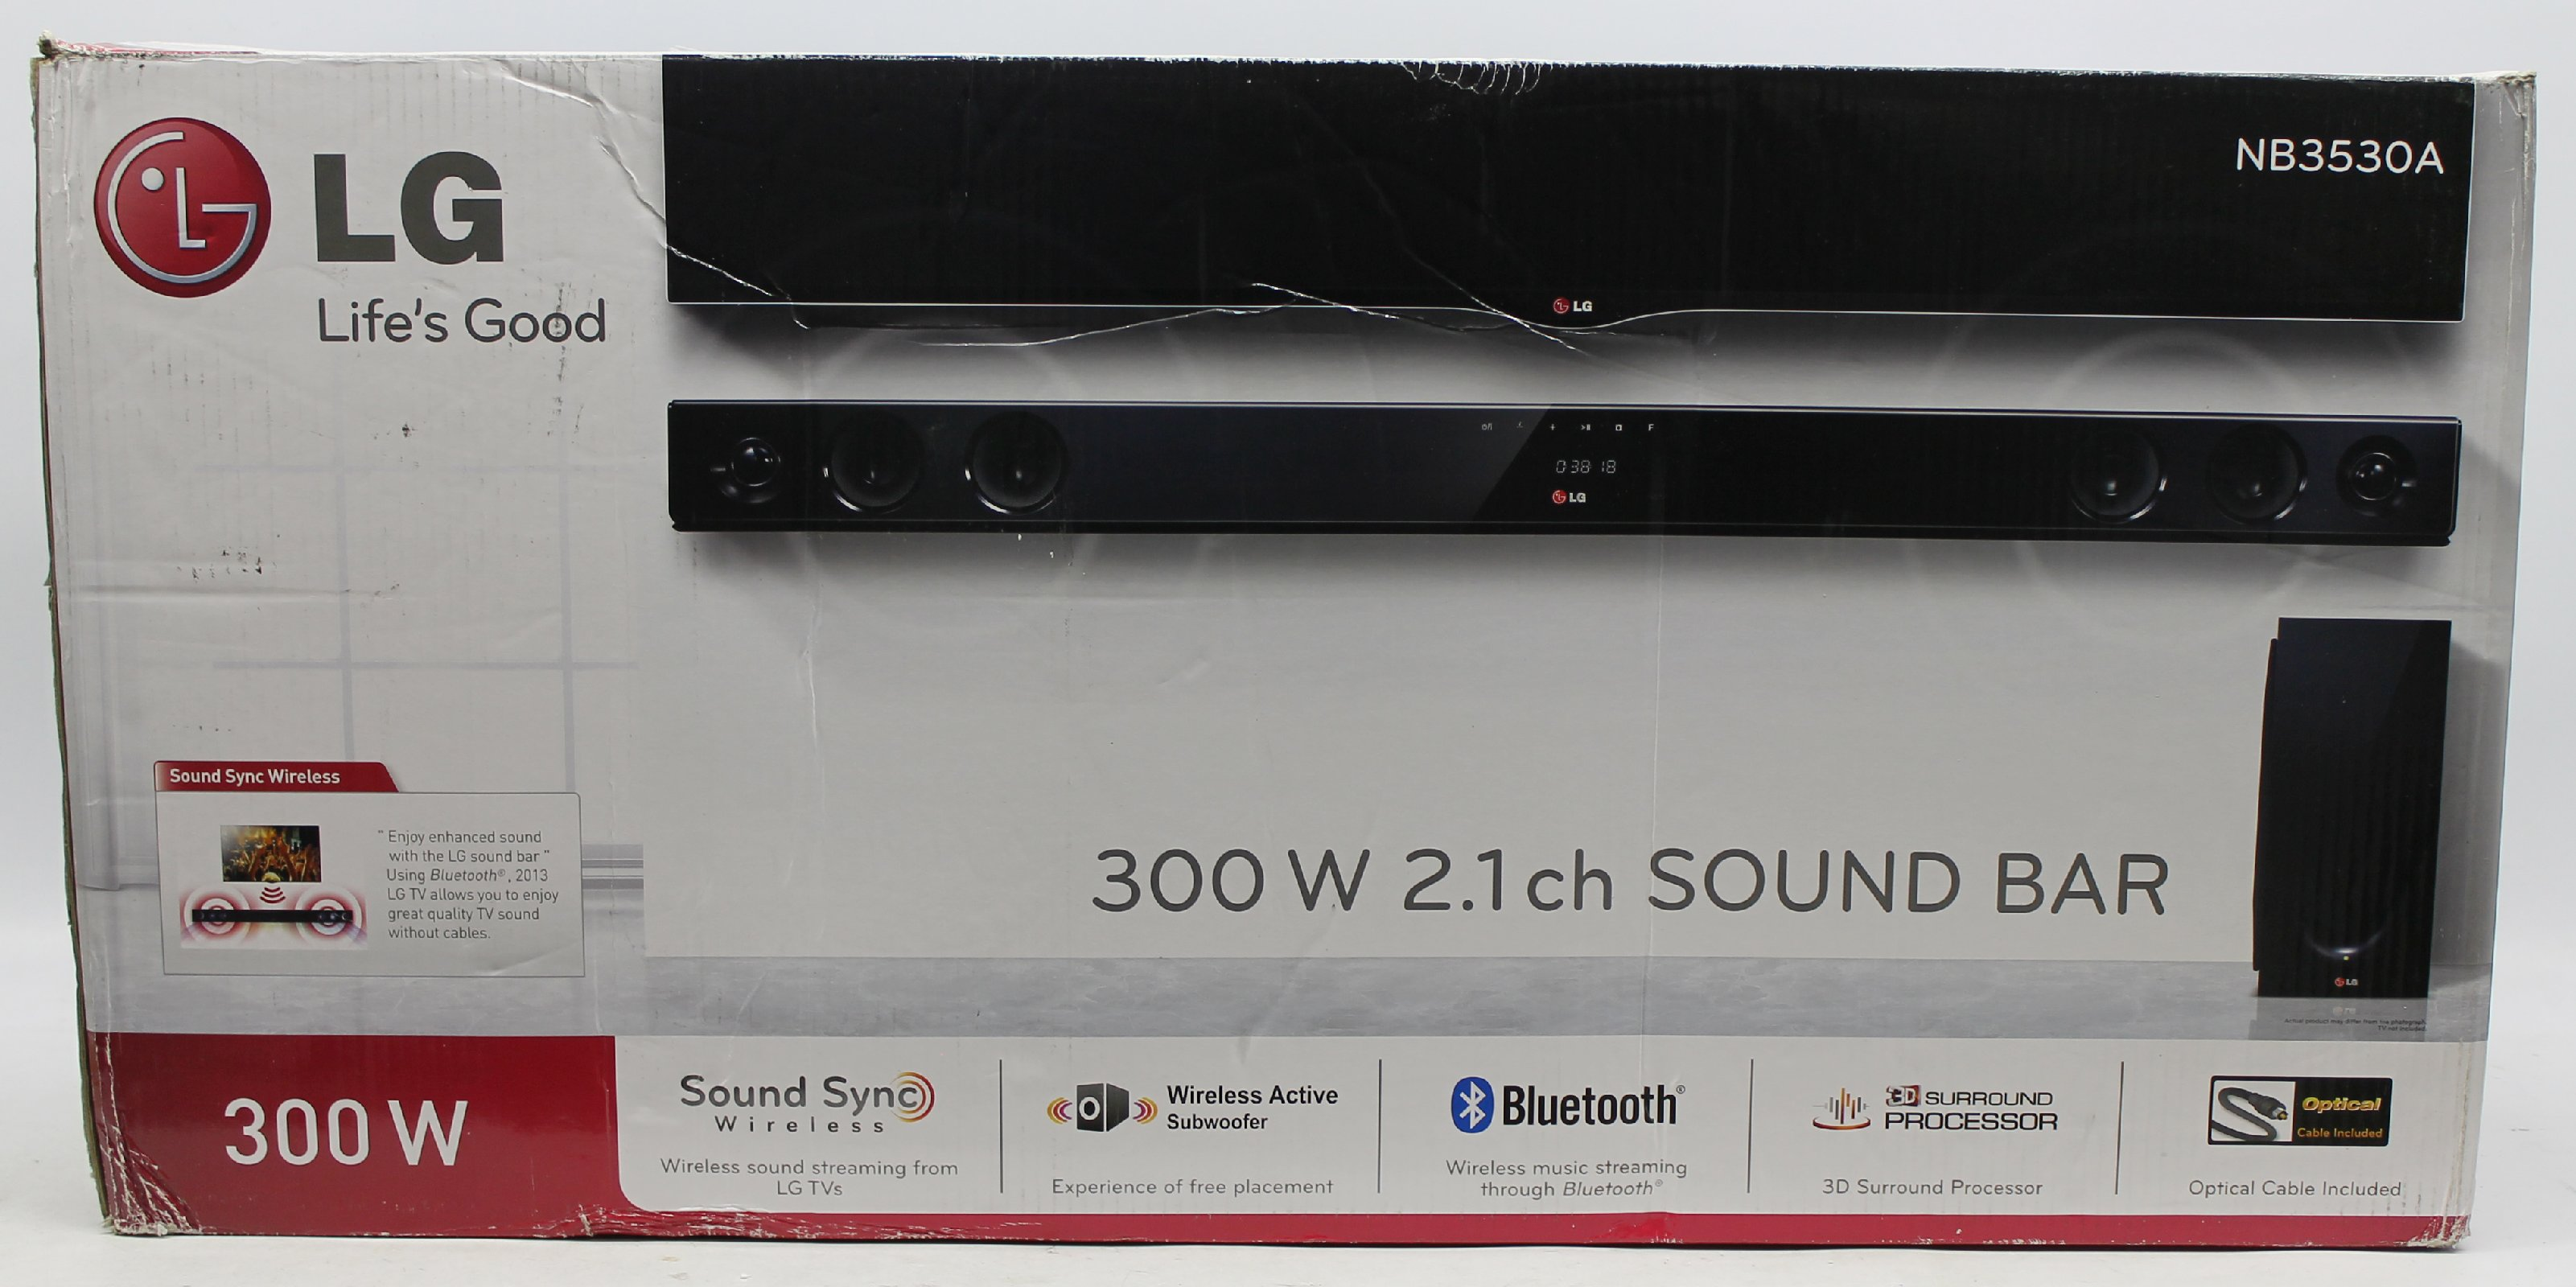 lg nb3530a 2 1 soundbar mit wireless subwoofer 300 watt usb schwarz ebay. Black Bedroom Furniture Sets. Home Design Ideas